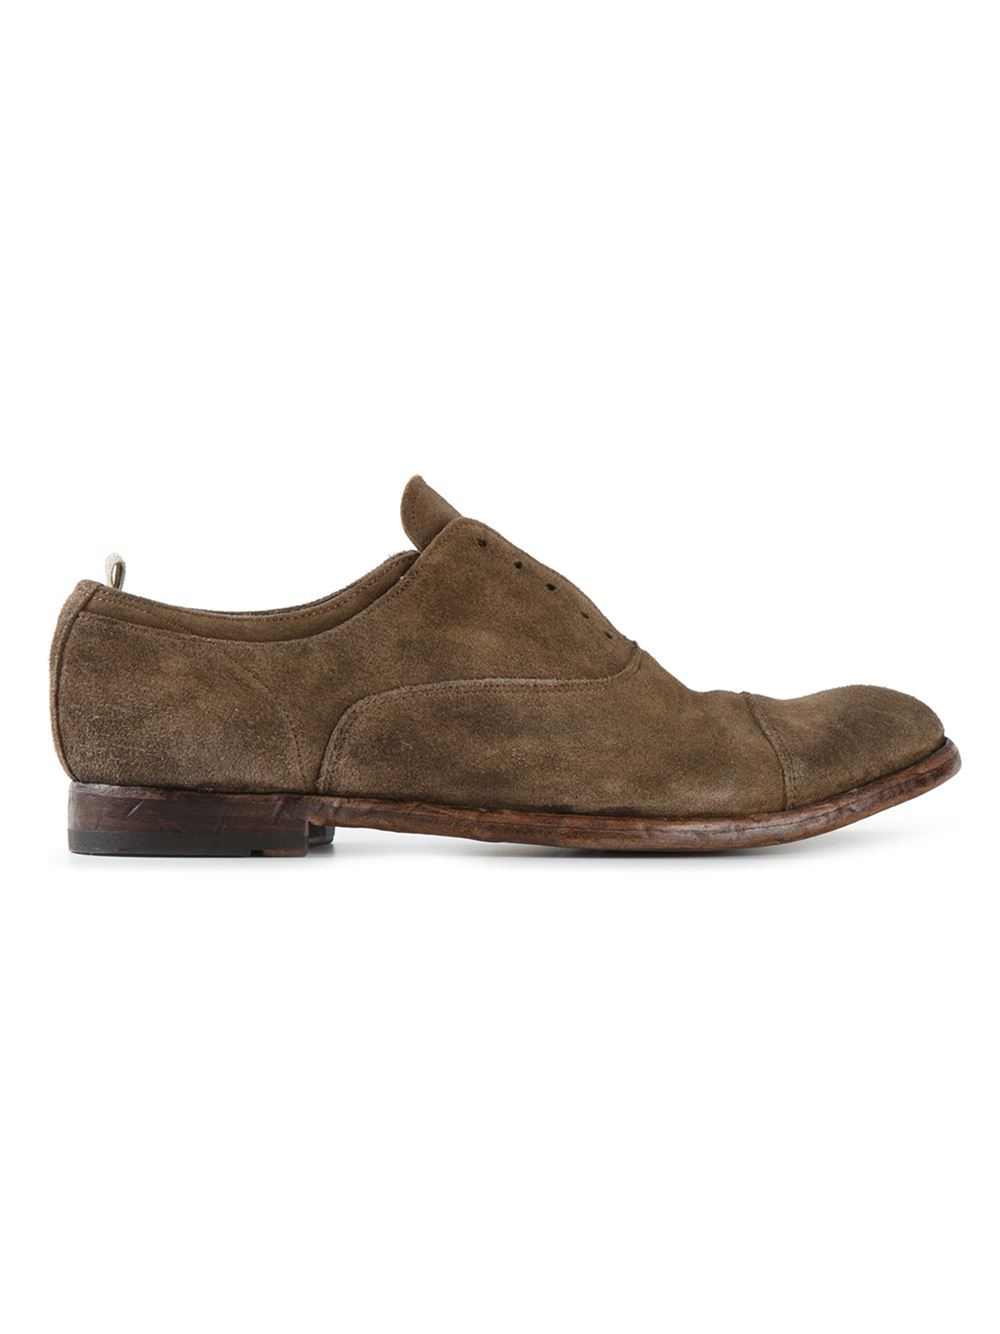 Officine Creative Anatomia Oxford Shoes In Green For Men | Lyst